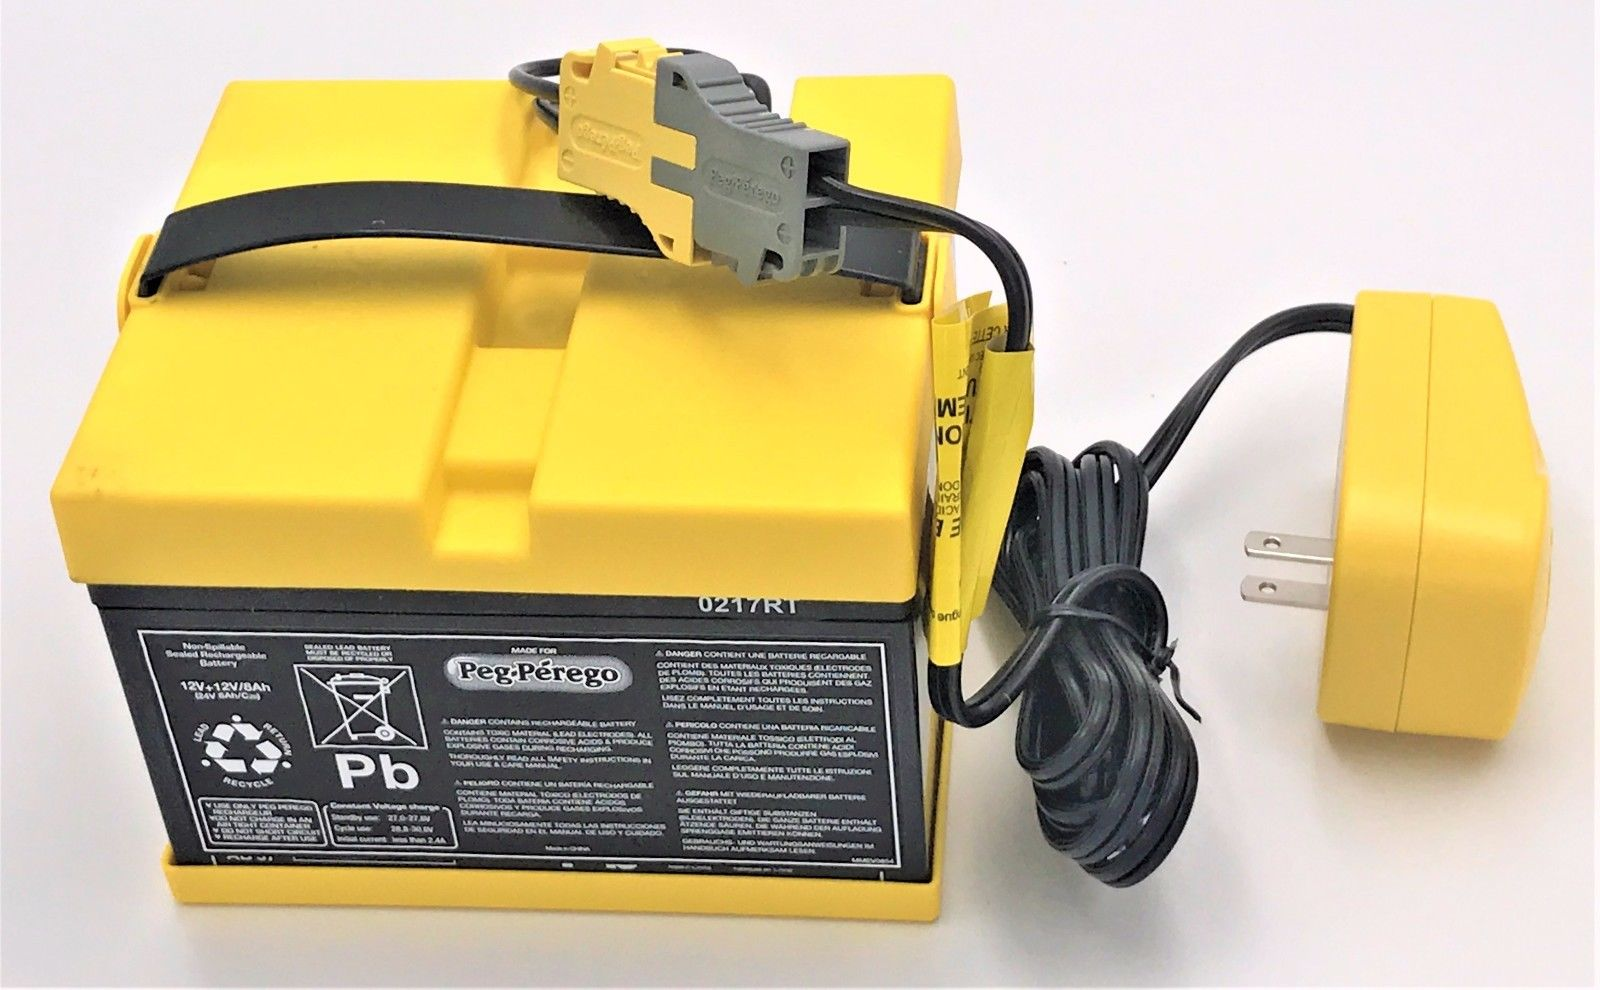 IAKB0529 Peg Perego 24 Volt Yellow Battery and Charger Combo -ONLY FITS IGOD0522 by Peg Perego